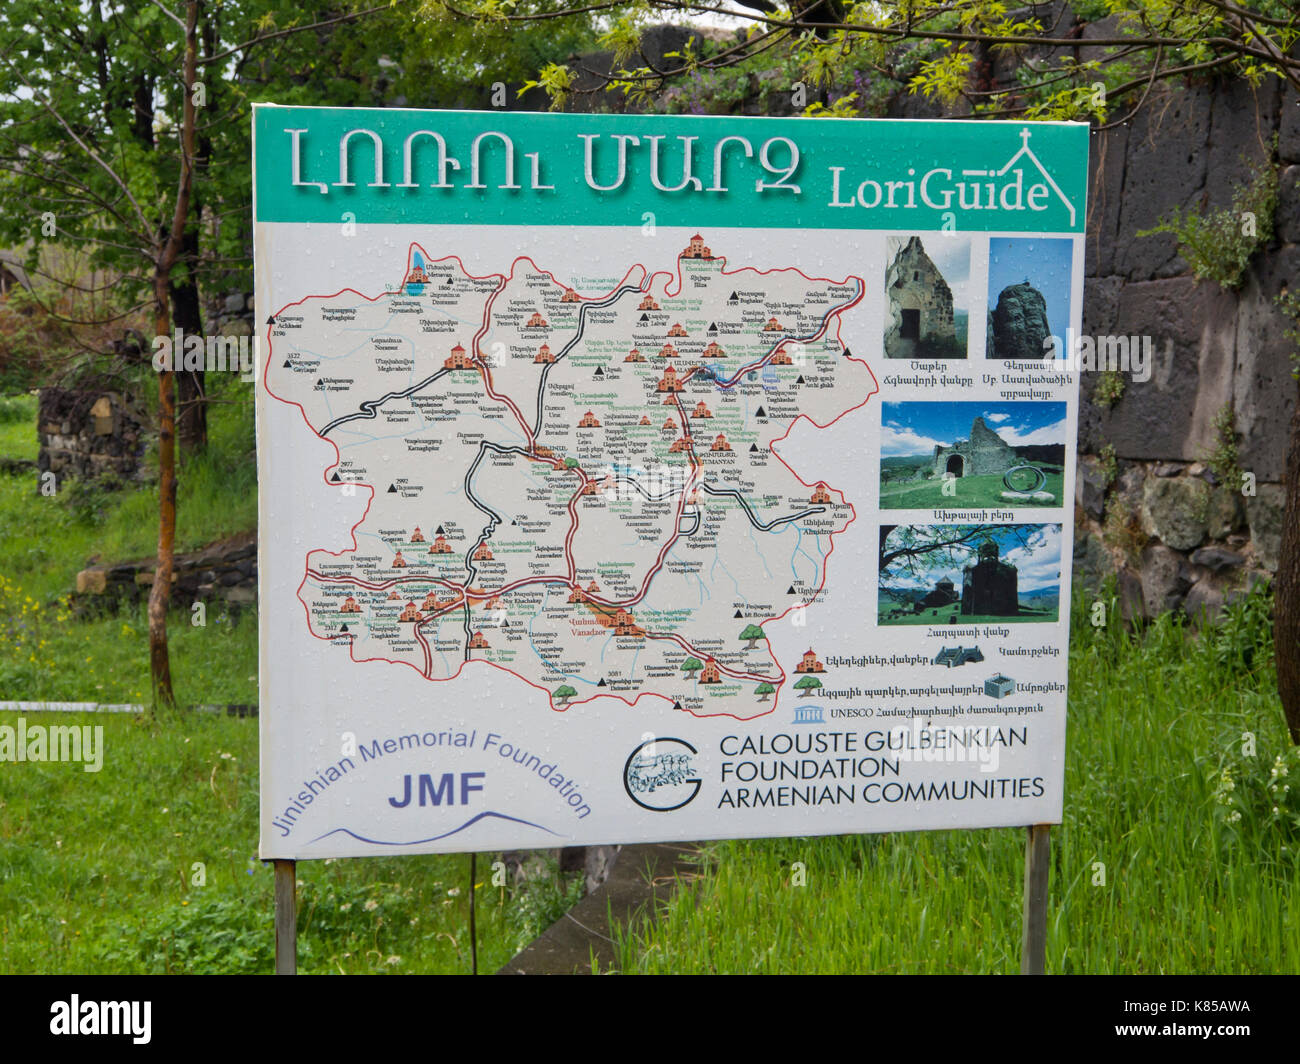 Information poster, map of important monuments all over Armenia set up at Haghpat Monastery Haghpatavank, showing supportive foundations - Stock Image